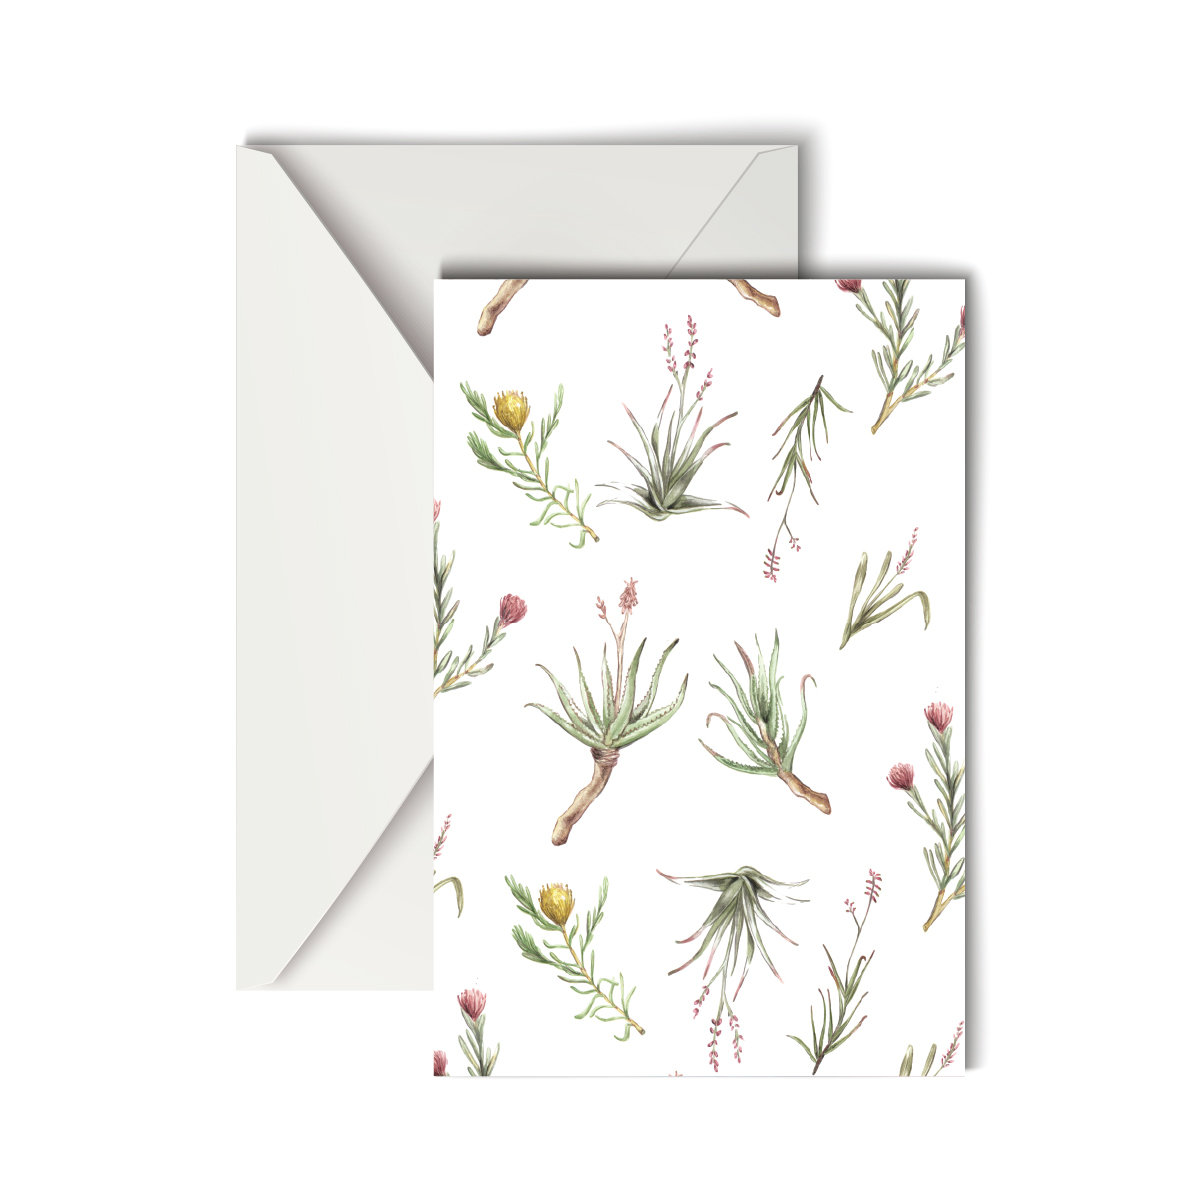 Fynbos Greeting card 00023